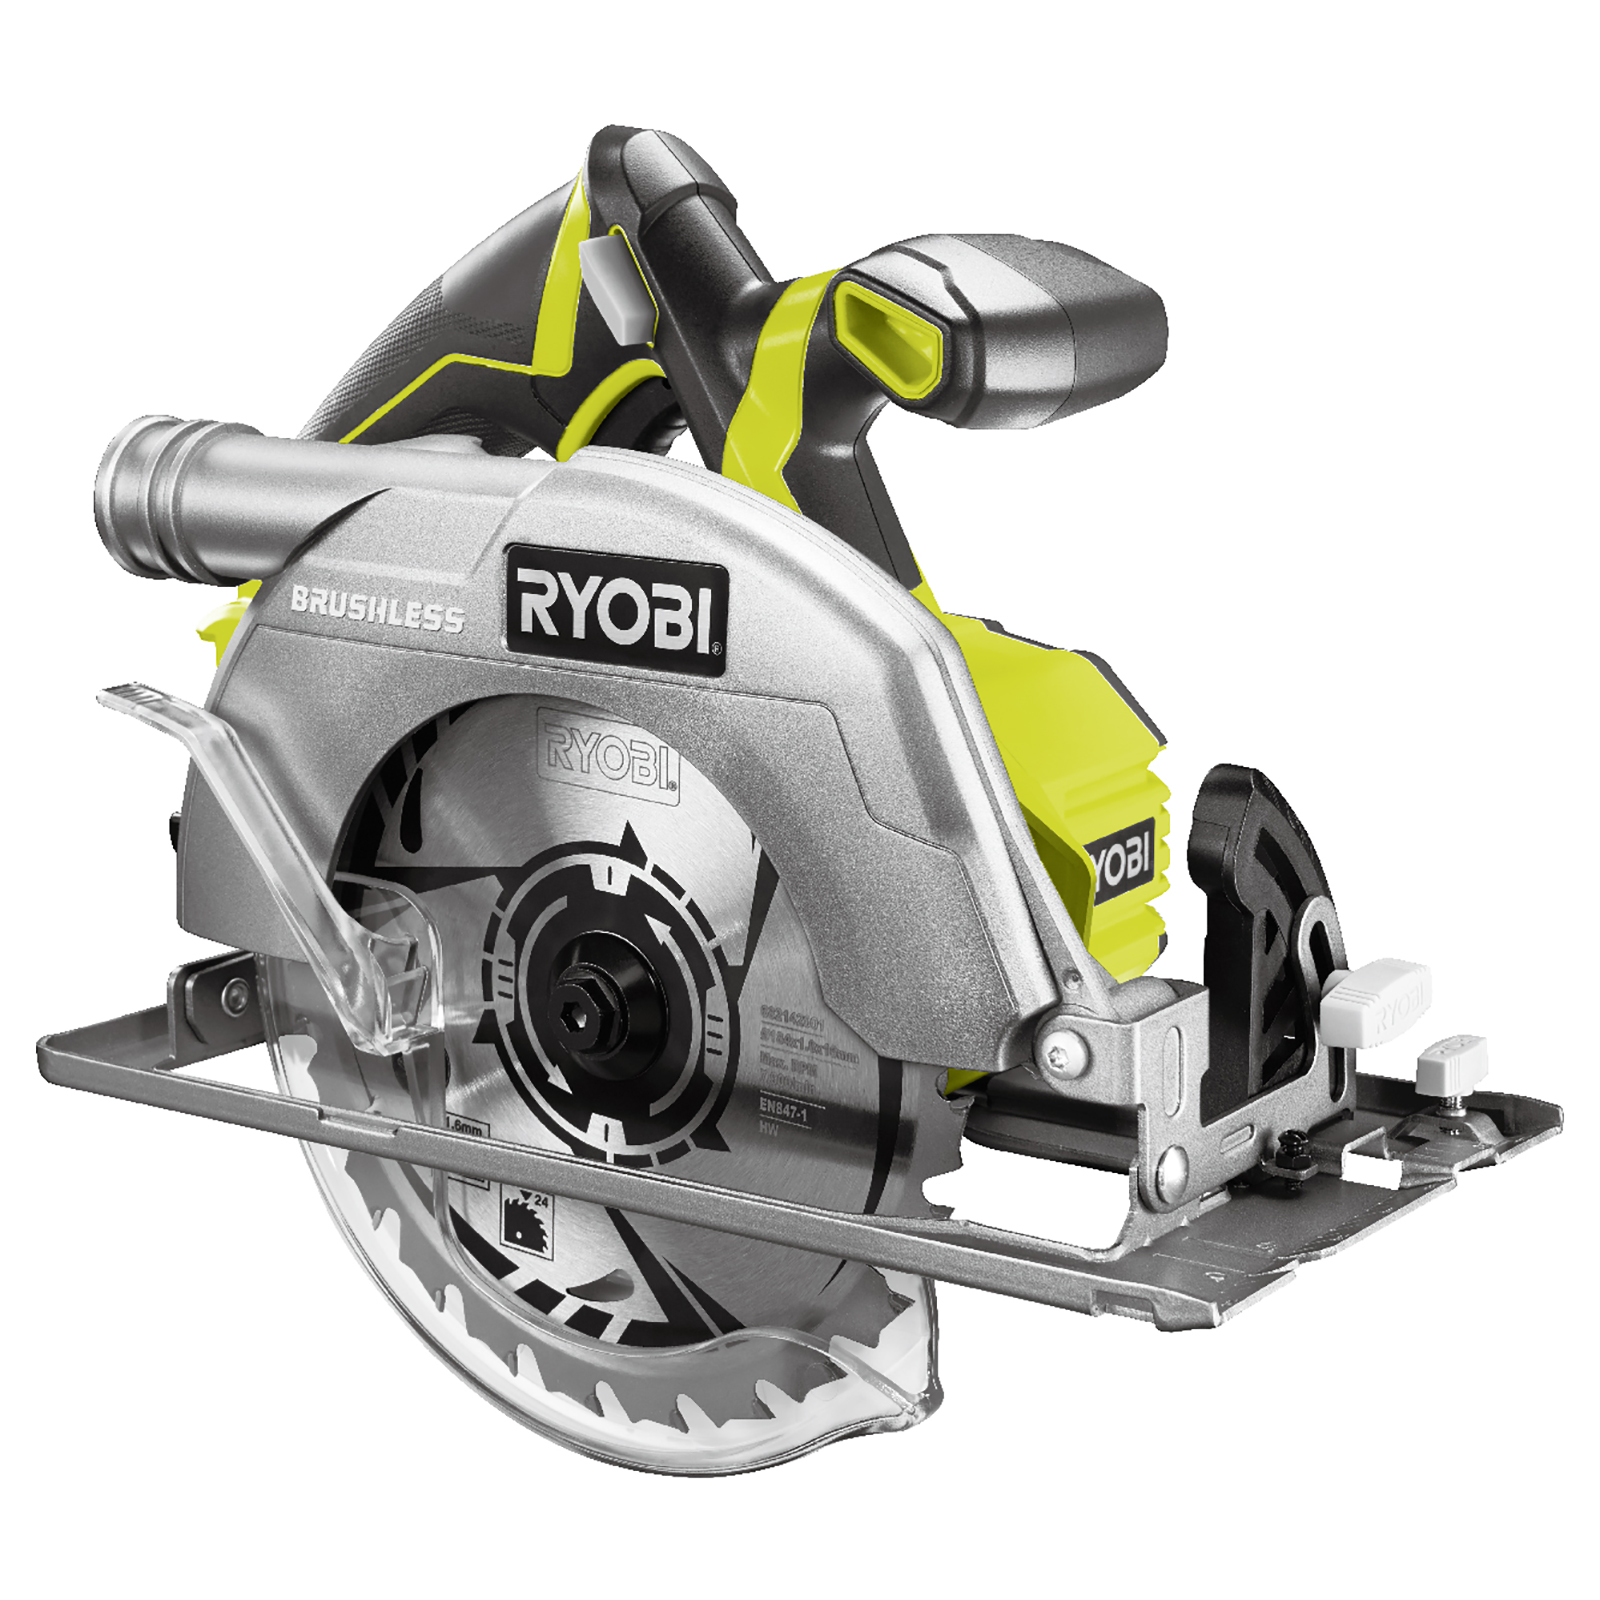 Ryobi 18v 7 14 inch brushless circular saw spotted tool craze last week we learned about a new ryobi 18v brushless angle grinder which is impressive news from ryobi they are in a relentless mission as are other keyboard keysfo Gallery